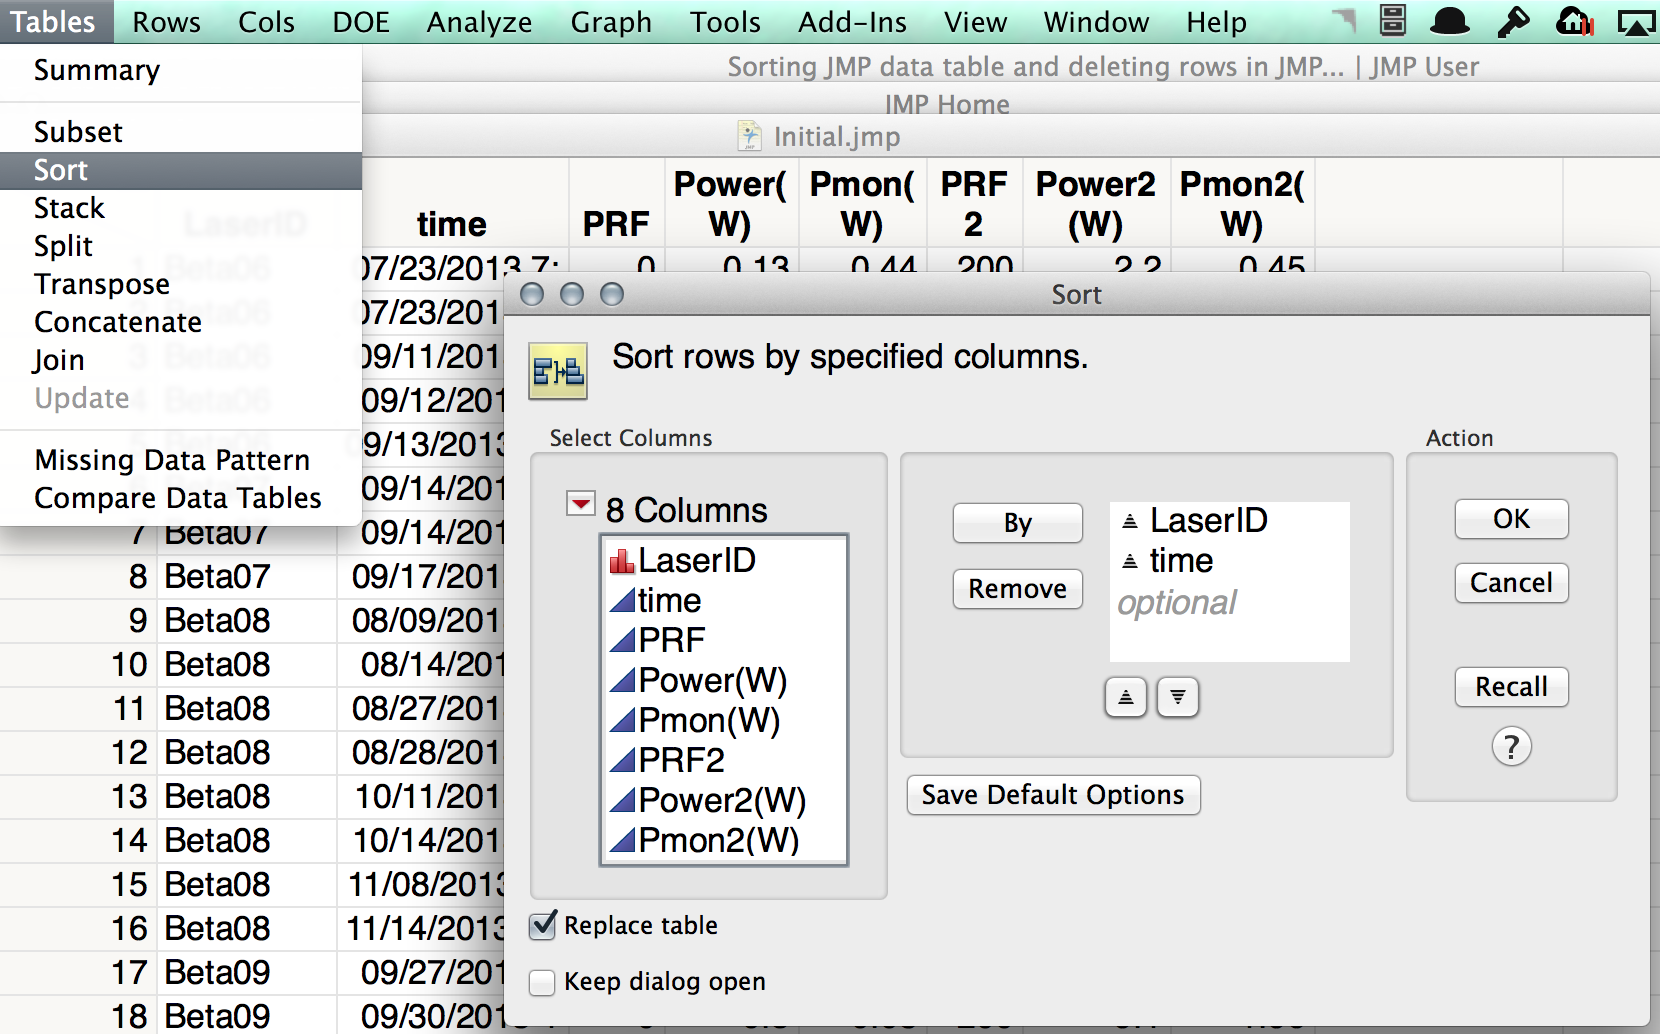 Solved: Sorting JMP data table and deleting rows in JMP